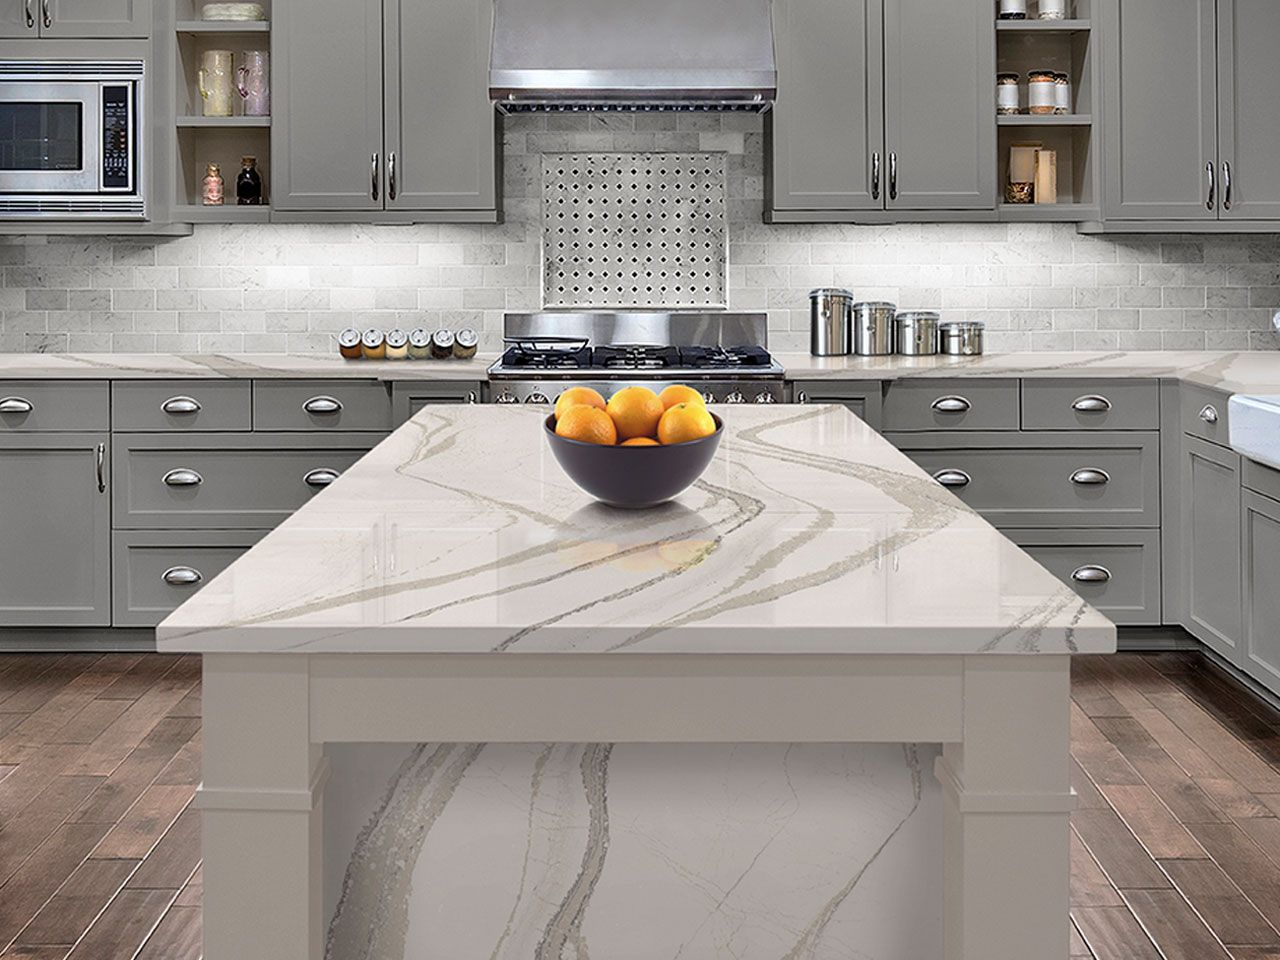 How Much Are Quartz Countertops Installed Why Should You Choose Quartz For Your Countertops Kgt